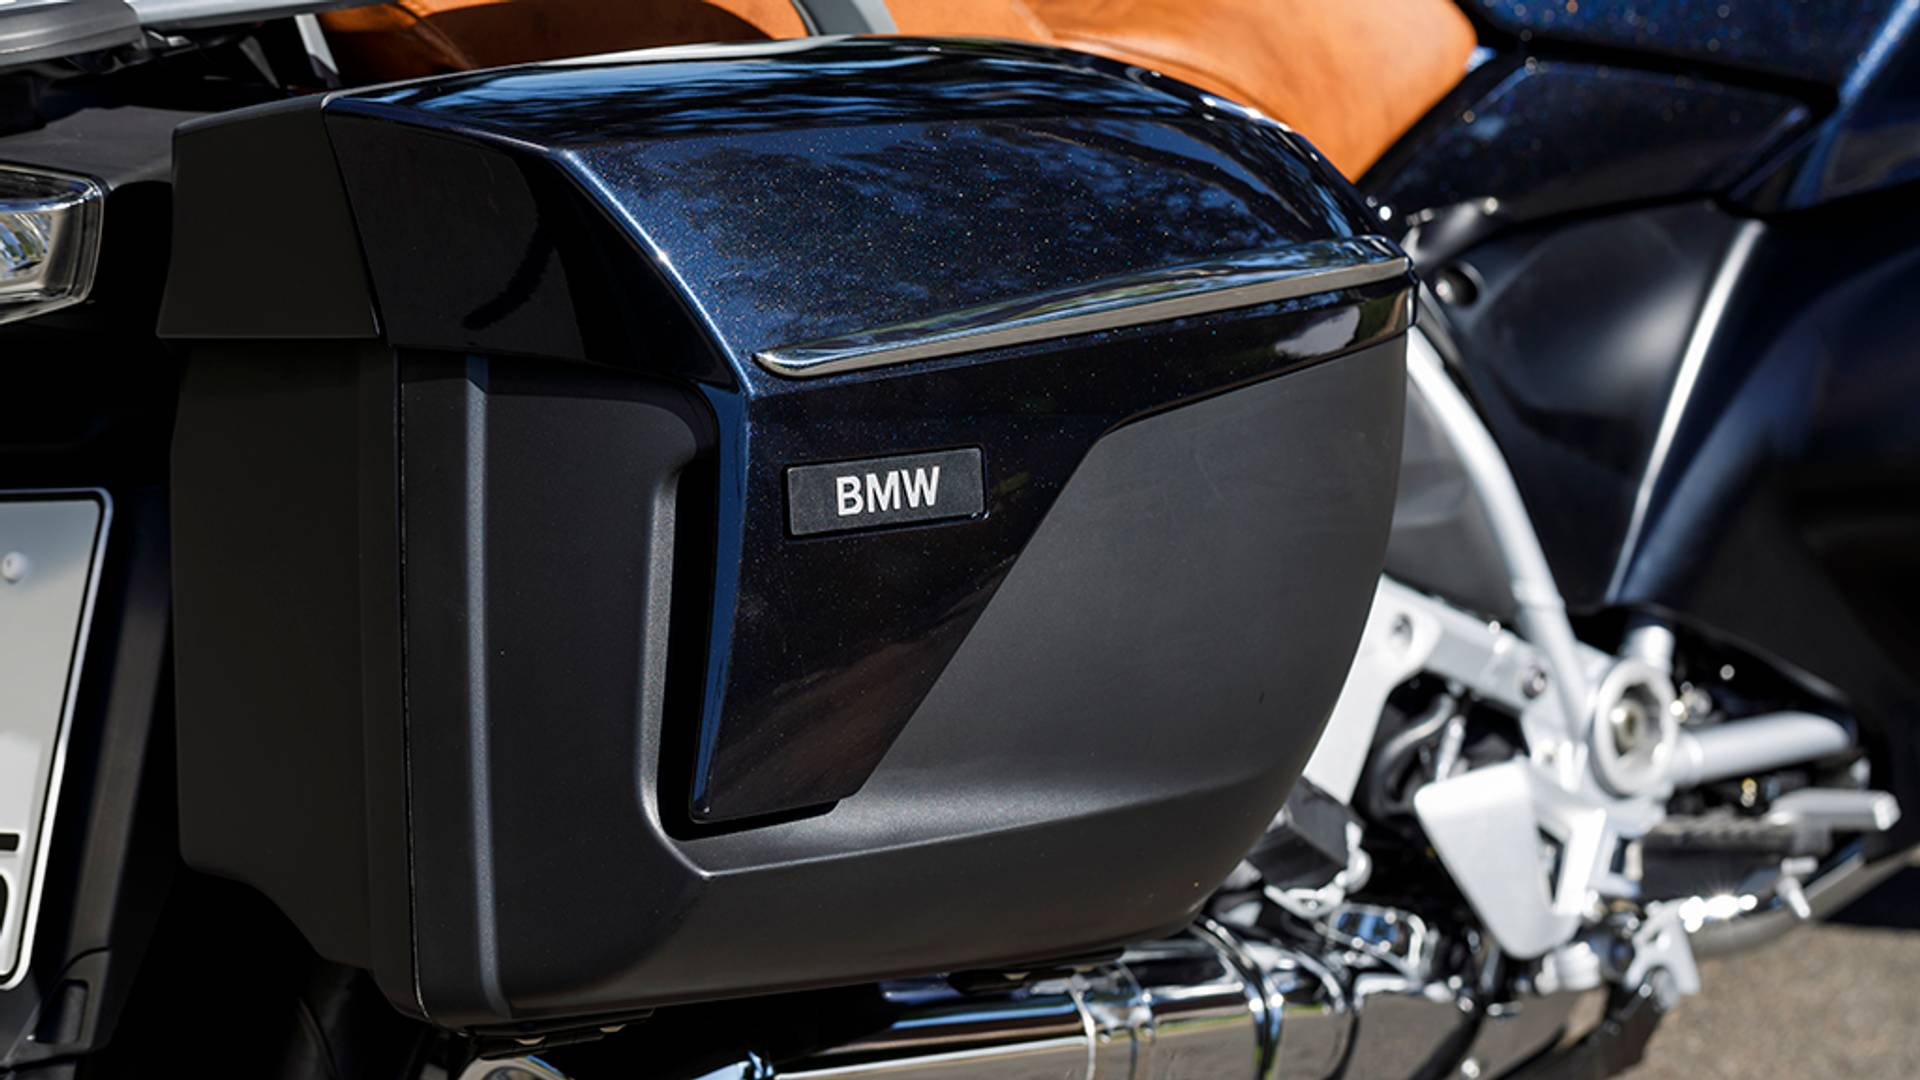 2019-bmw-r1250rt-4 Noul BMW R 1250 GS si RT sunt prezentate in sfarsit in 'carne si oase'